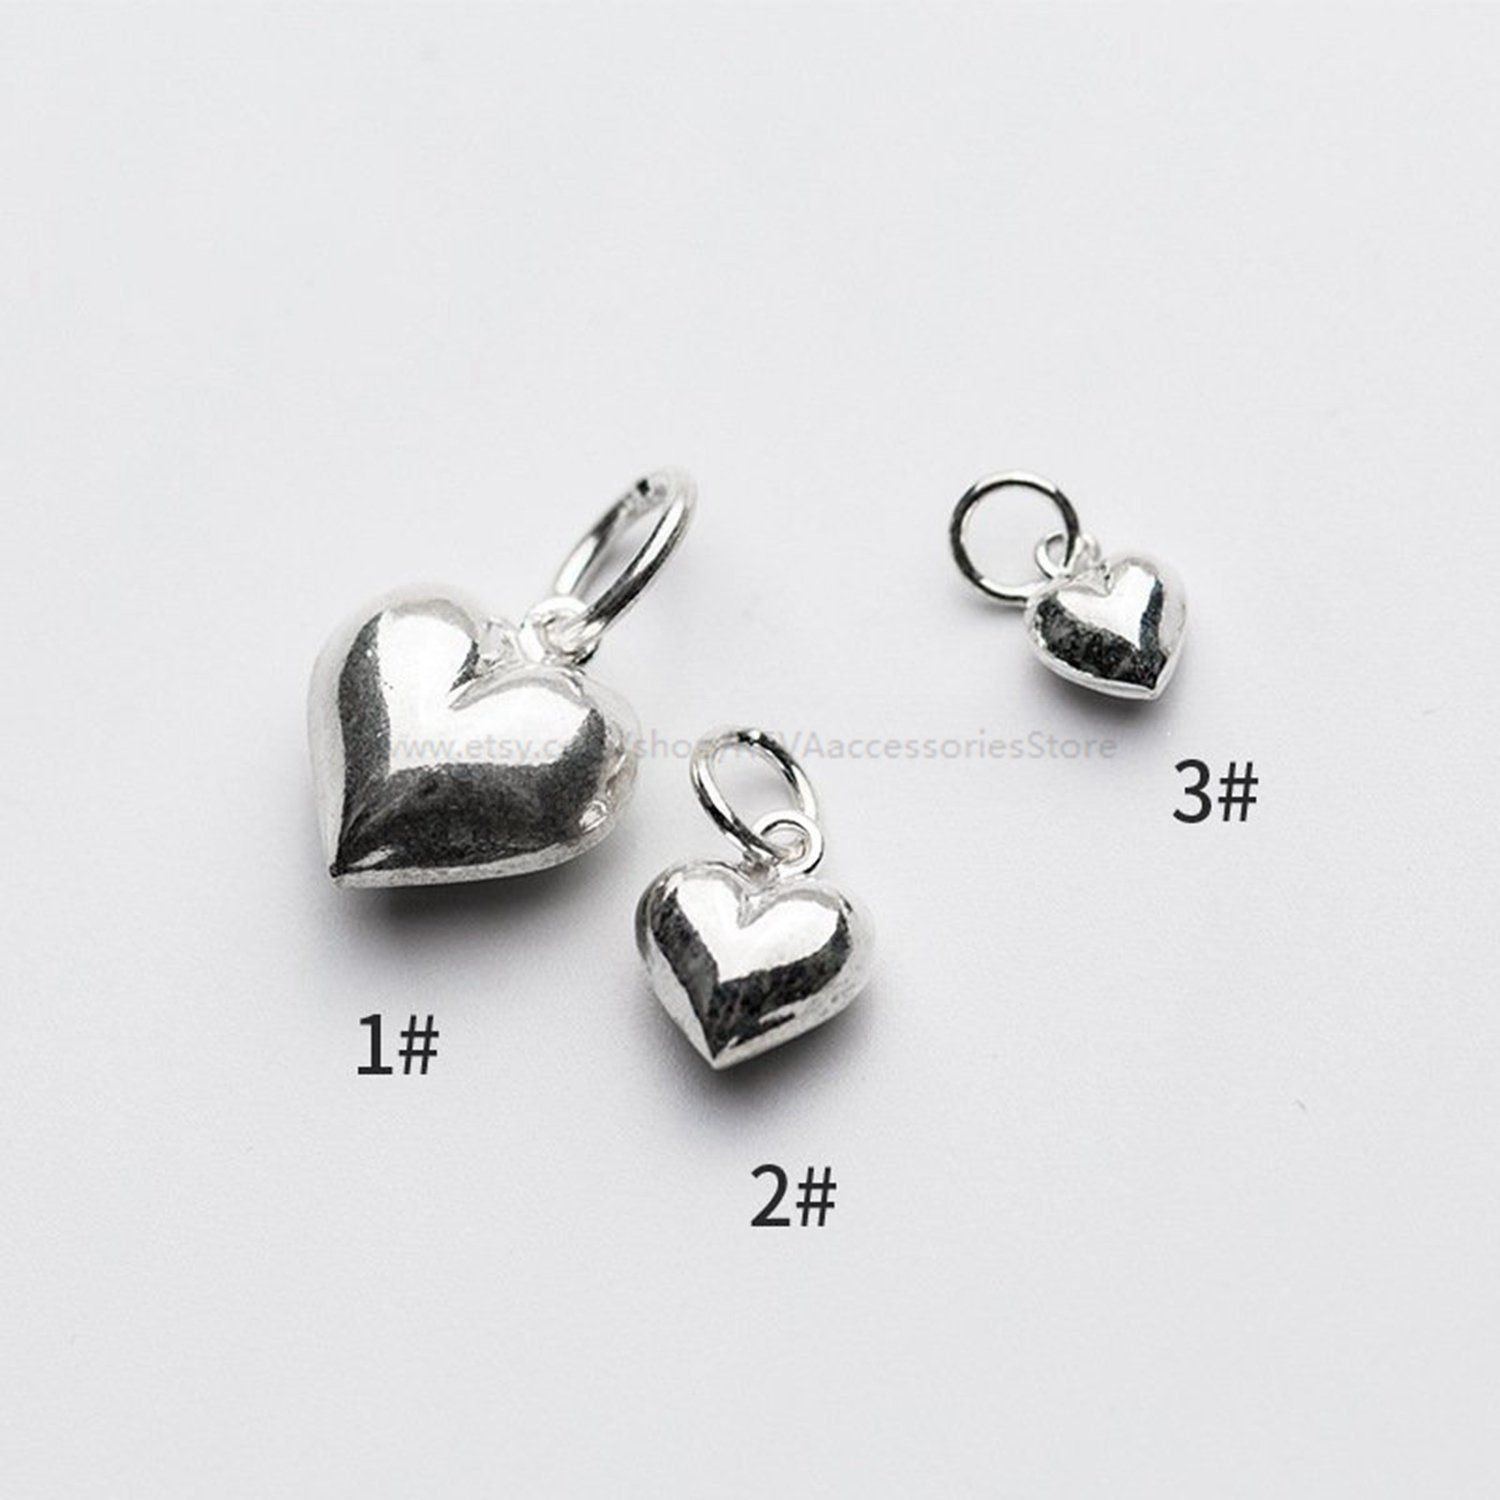 Bulk Charms Silver Heart Charms for Necklace and Bracelet